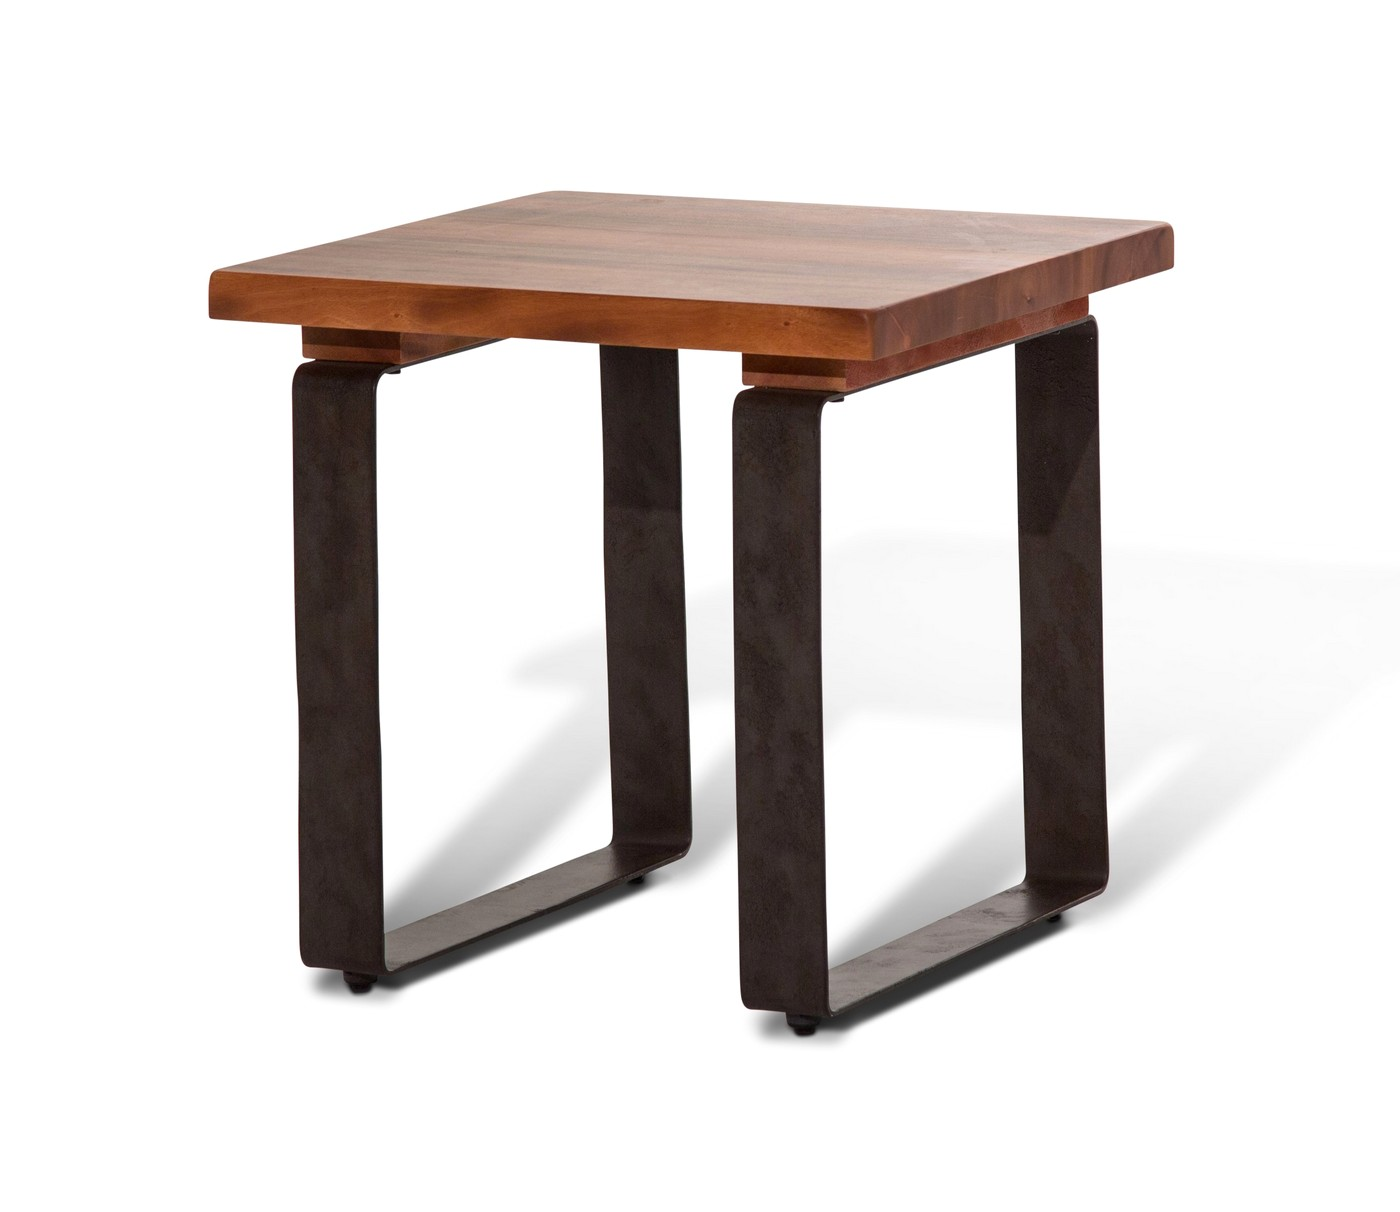 End Tables With Metal Legs Telluride Rustic Country Style Mahogany End Table With